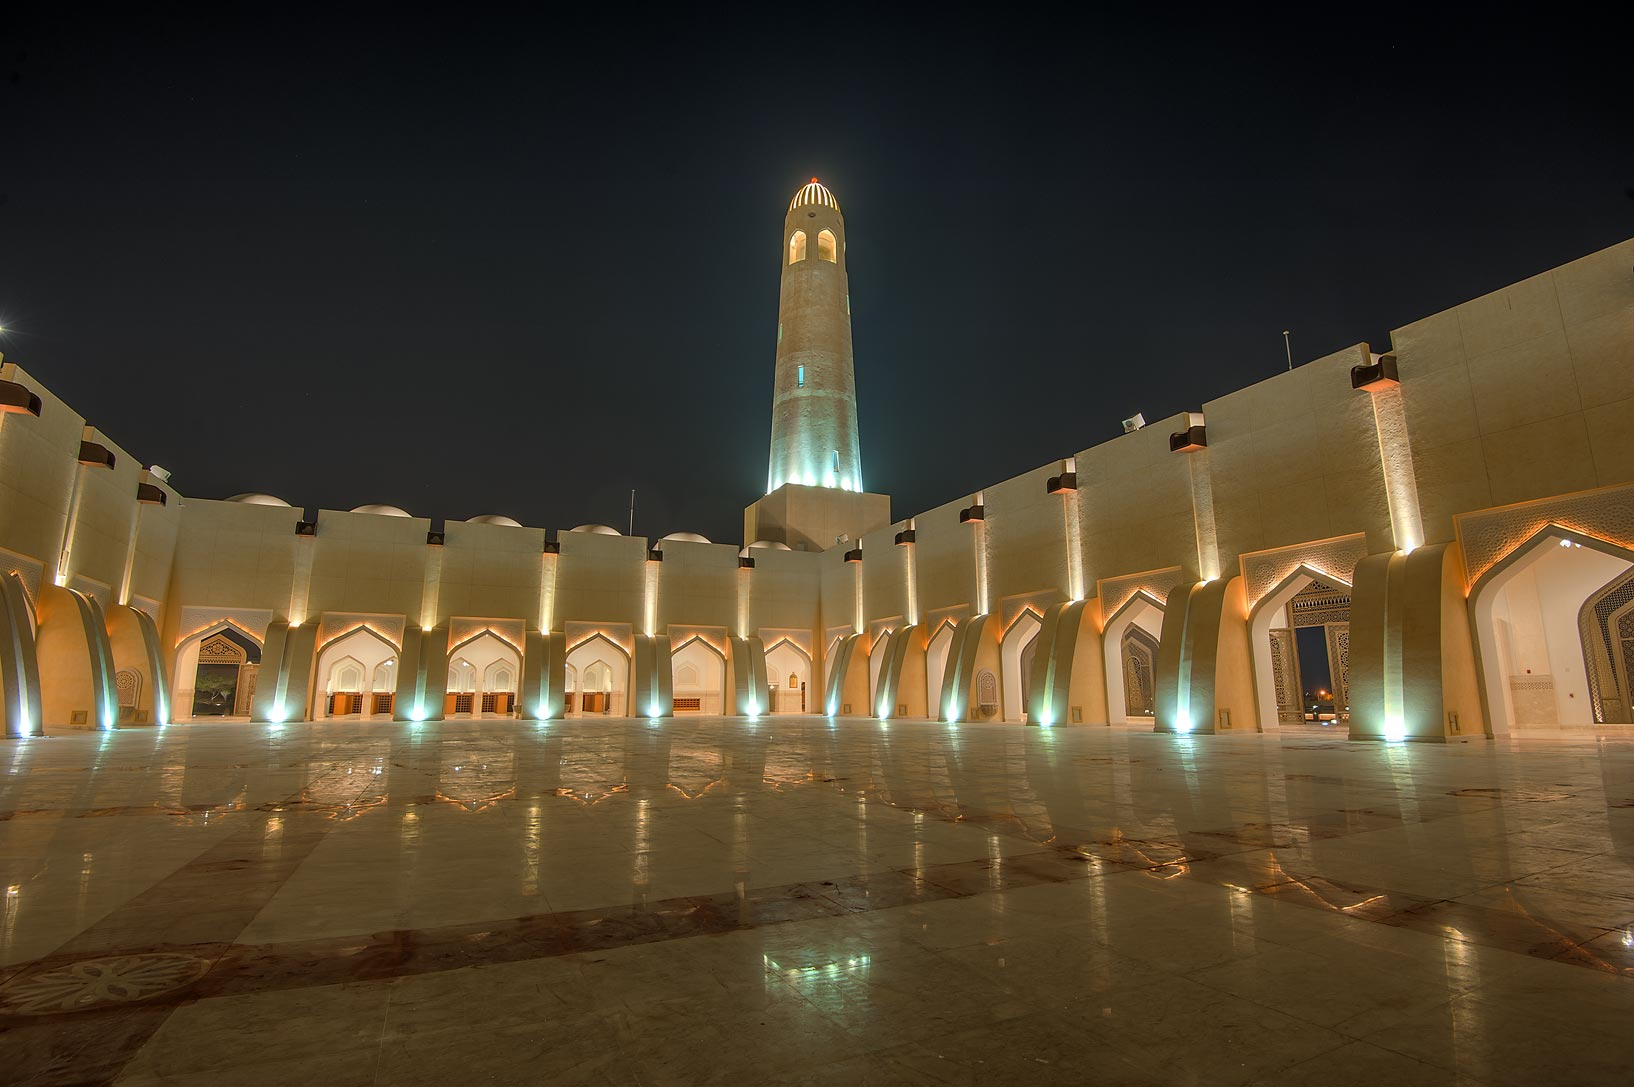 Women's section of State Mosque (Sheikh Muhammad Ibn Abdul Wahhab Mosque). Doha, Qatar